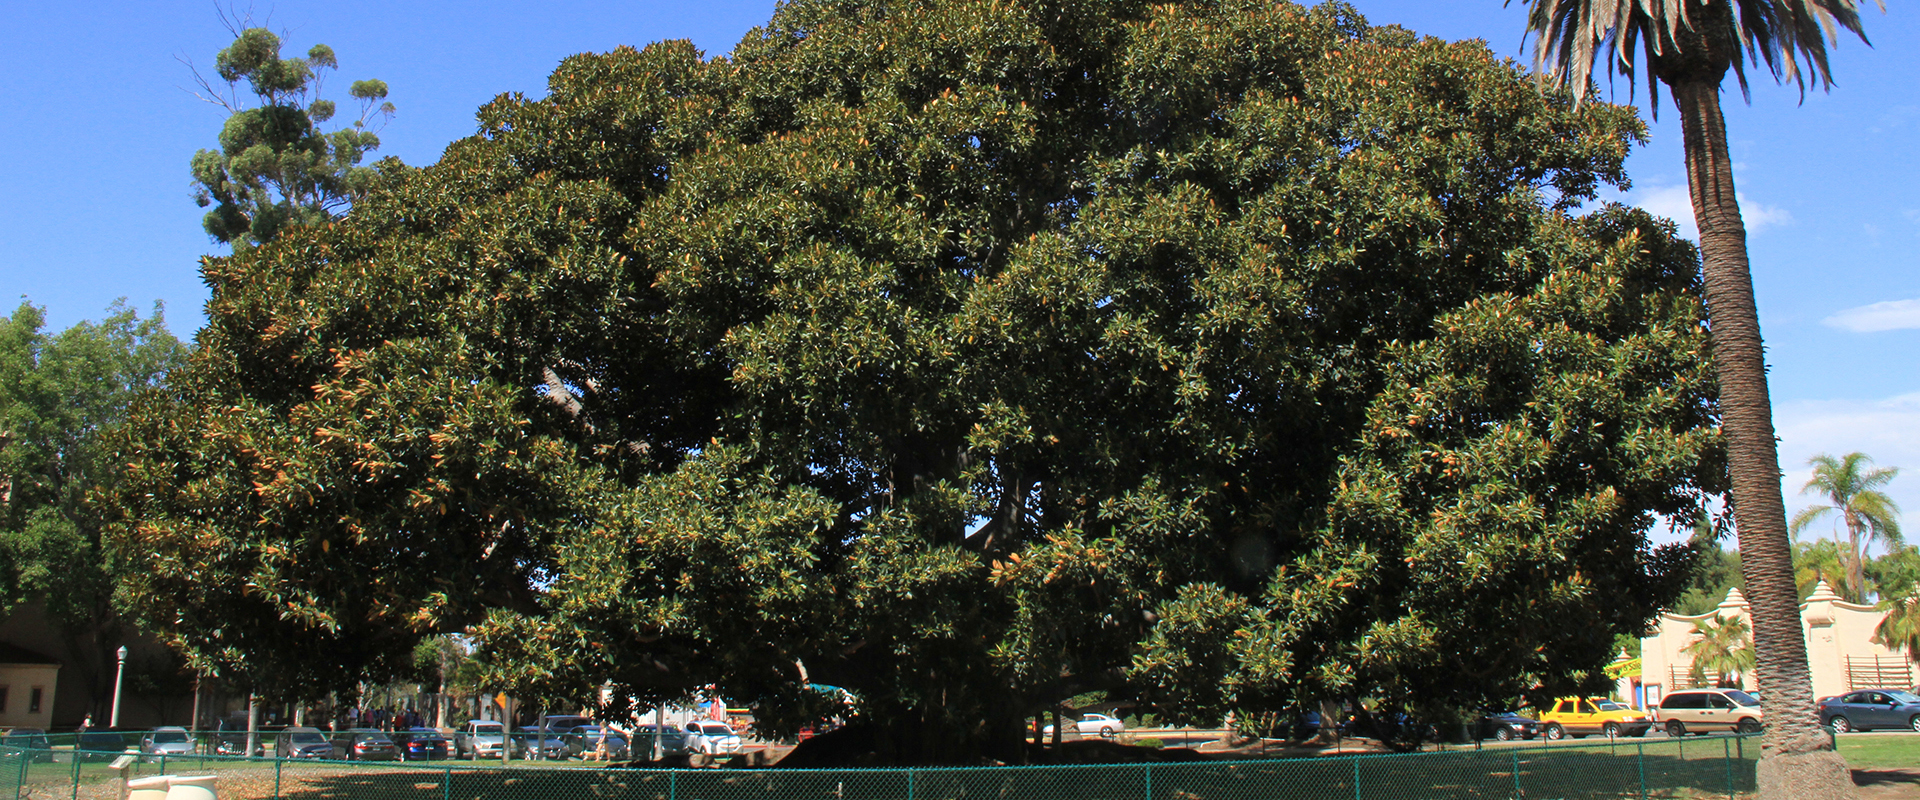 Moreton Bay Fig Tree